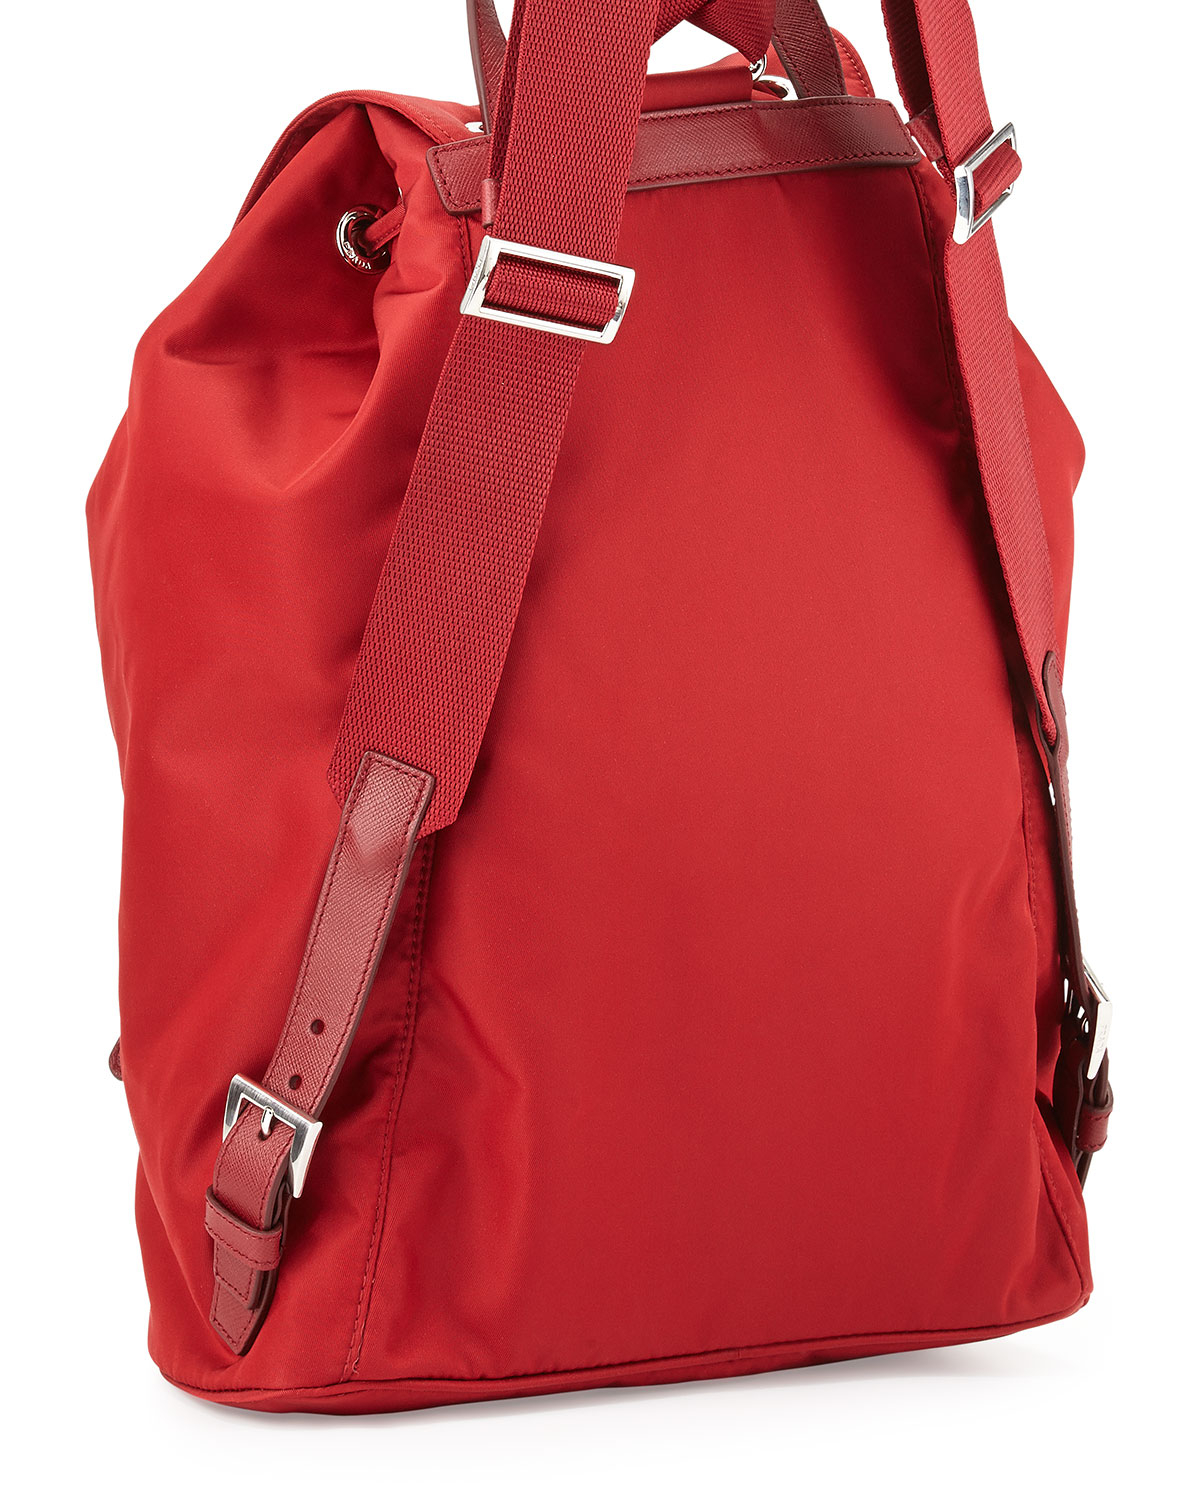 213c0dafe02d ... discount lyst prada vela large drawstring backpack in red a0d68 b3bfe